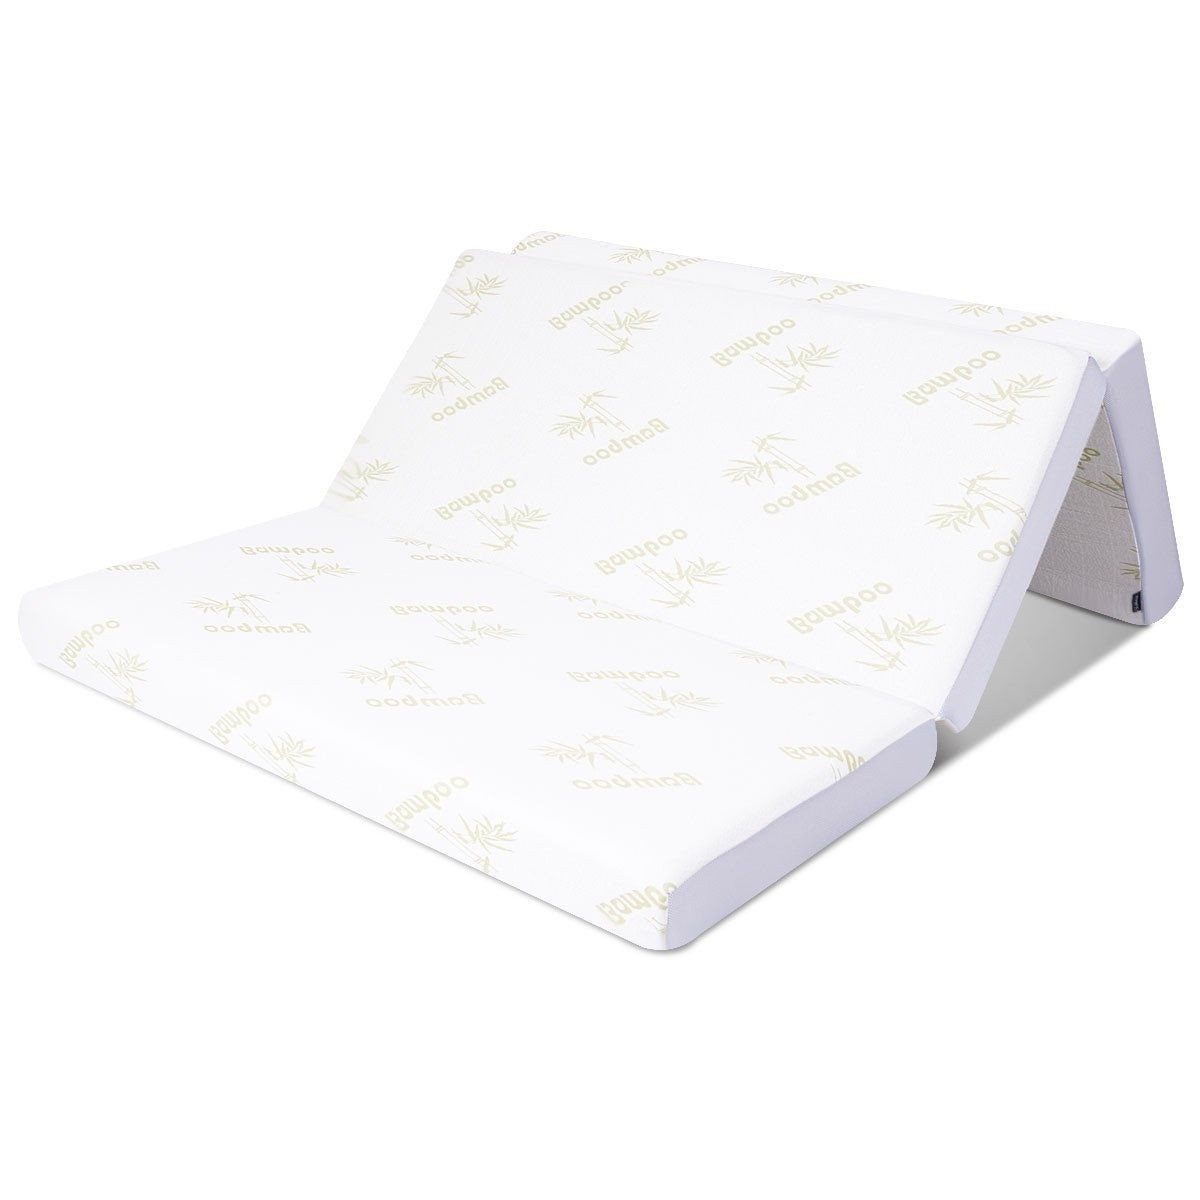 Full Size 6 Inch Thick Folding Memory Foam Mattress With Washable